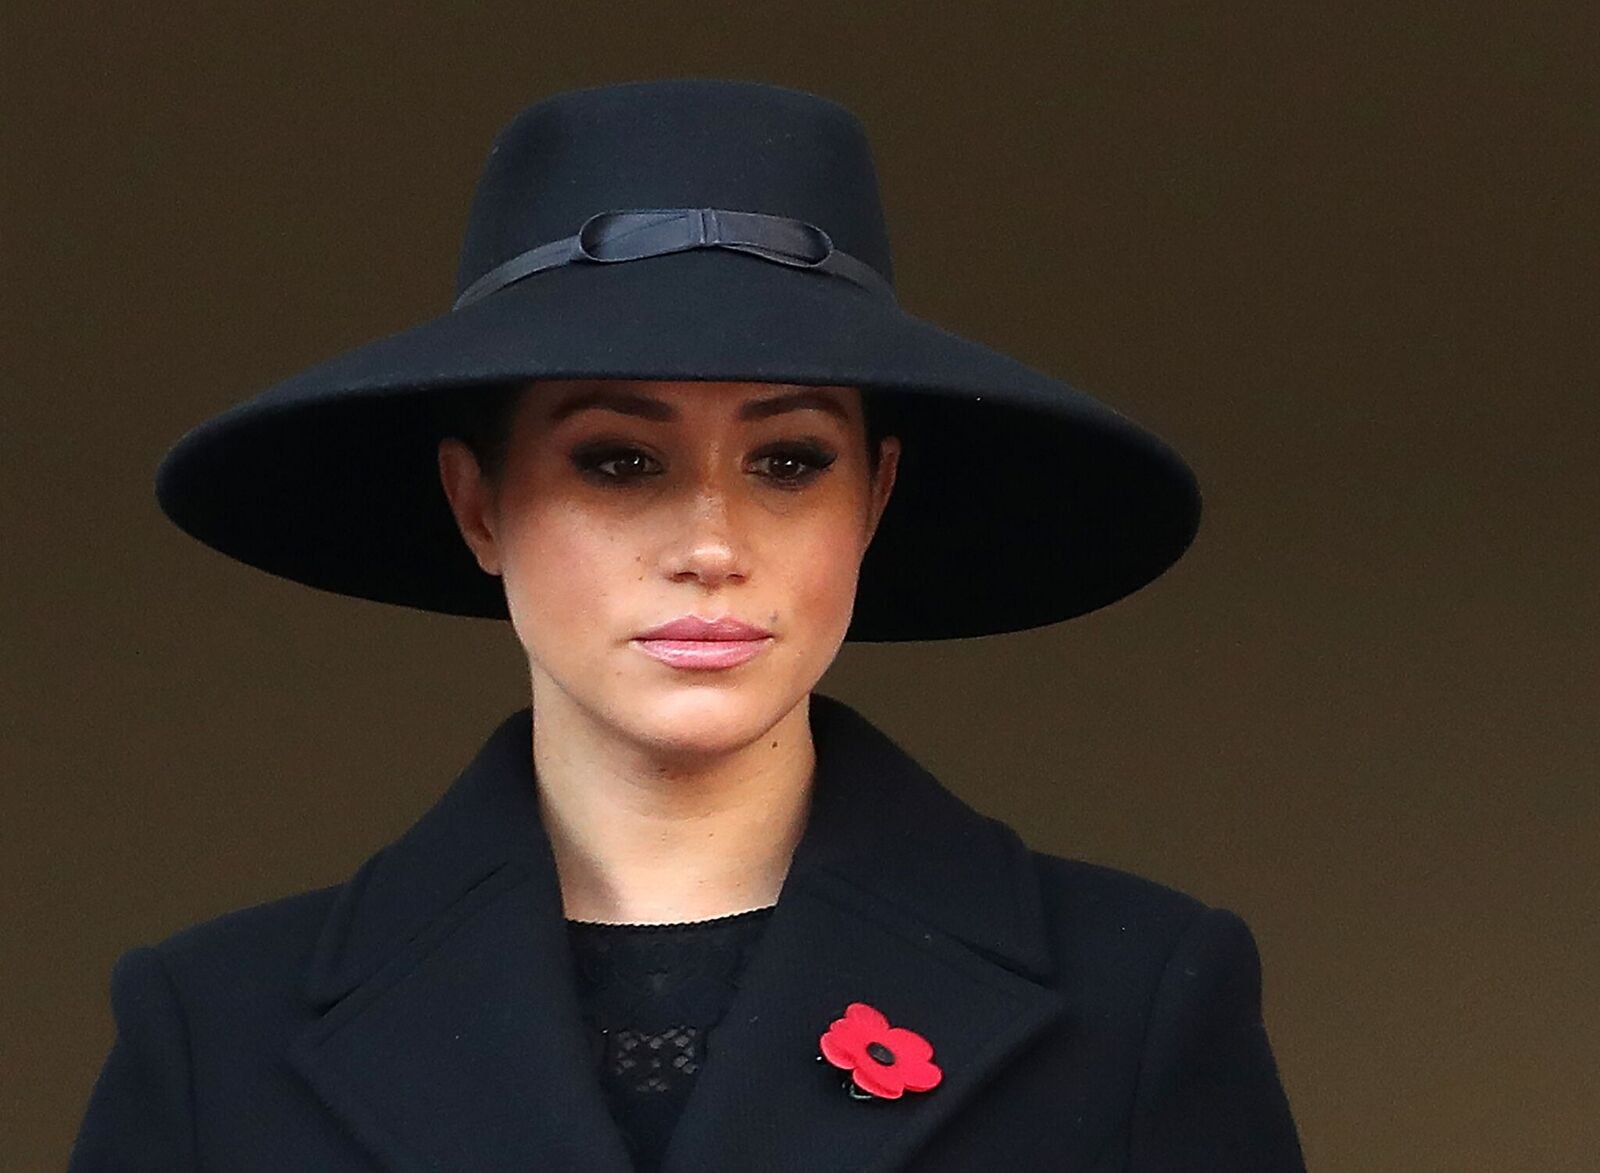 Duchess Meghan at the annual Remembrance Sunday memorial on November 10, 2019, in London, England | Photo: Chris Jackson/Getty Image